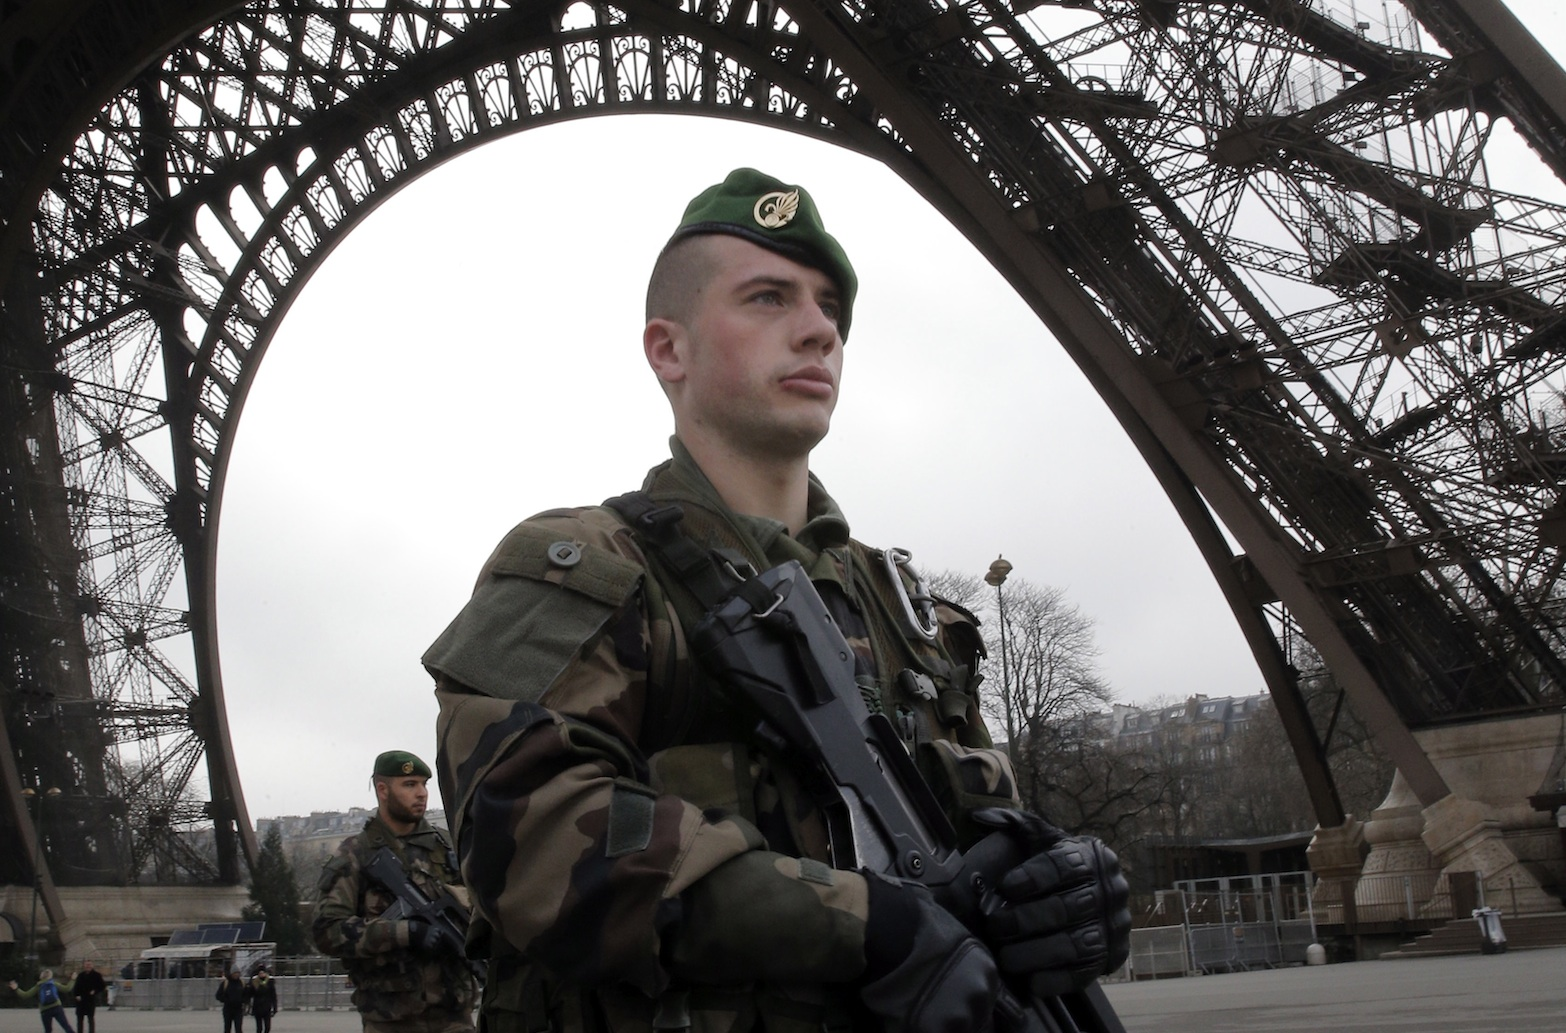 French soldiers on patrol at the Eiffel Tower. (AP)